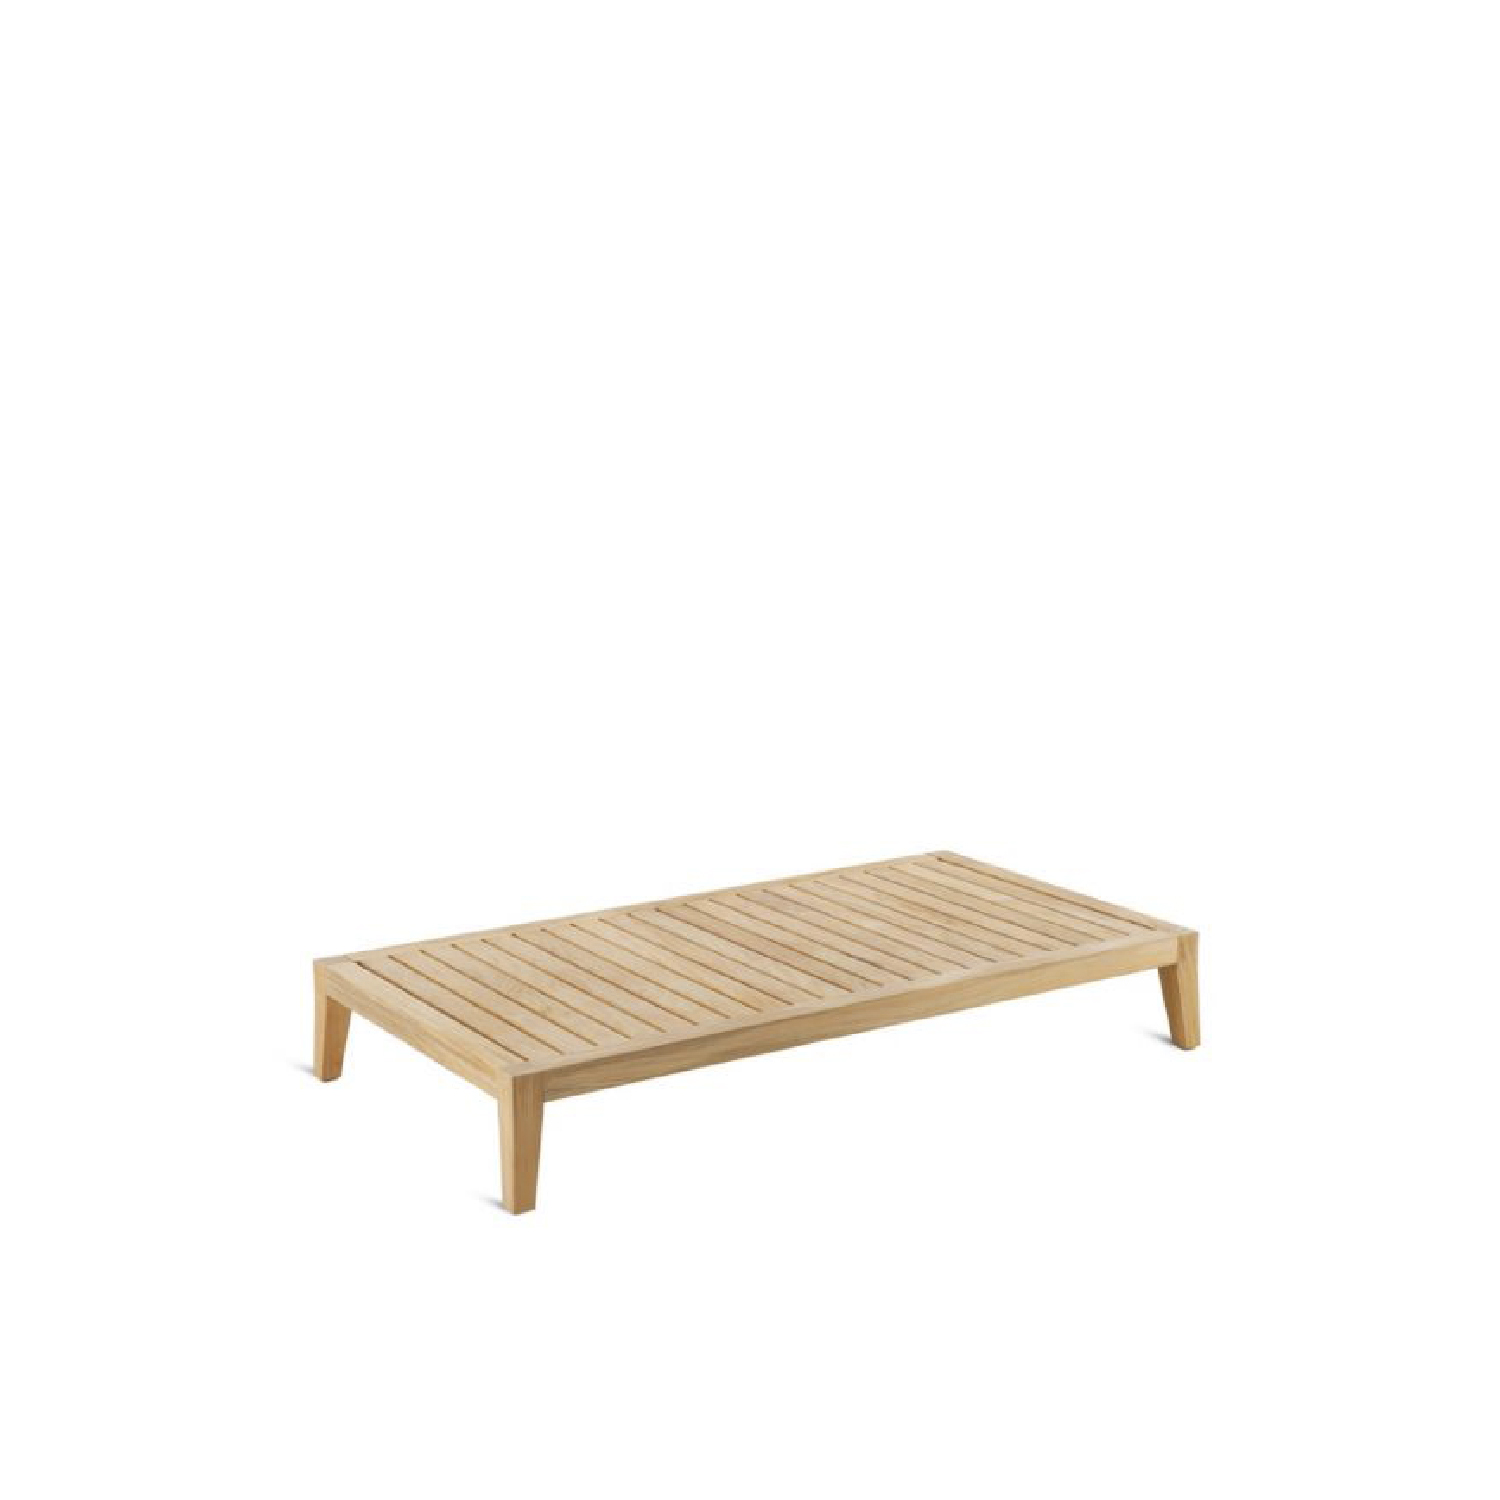 Synthesis Rectangular Coffee Table